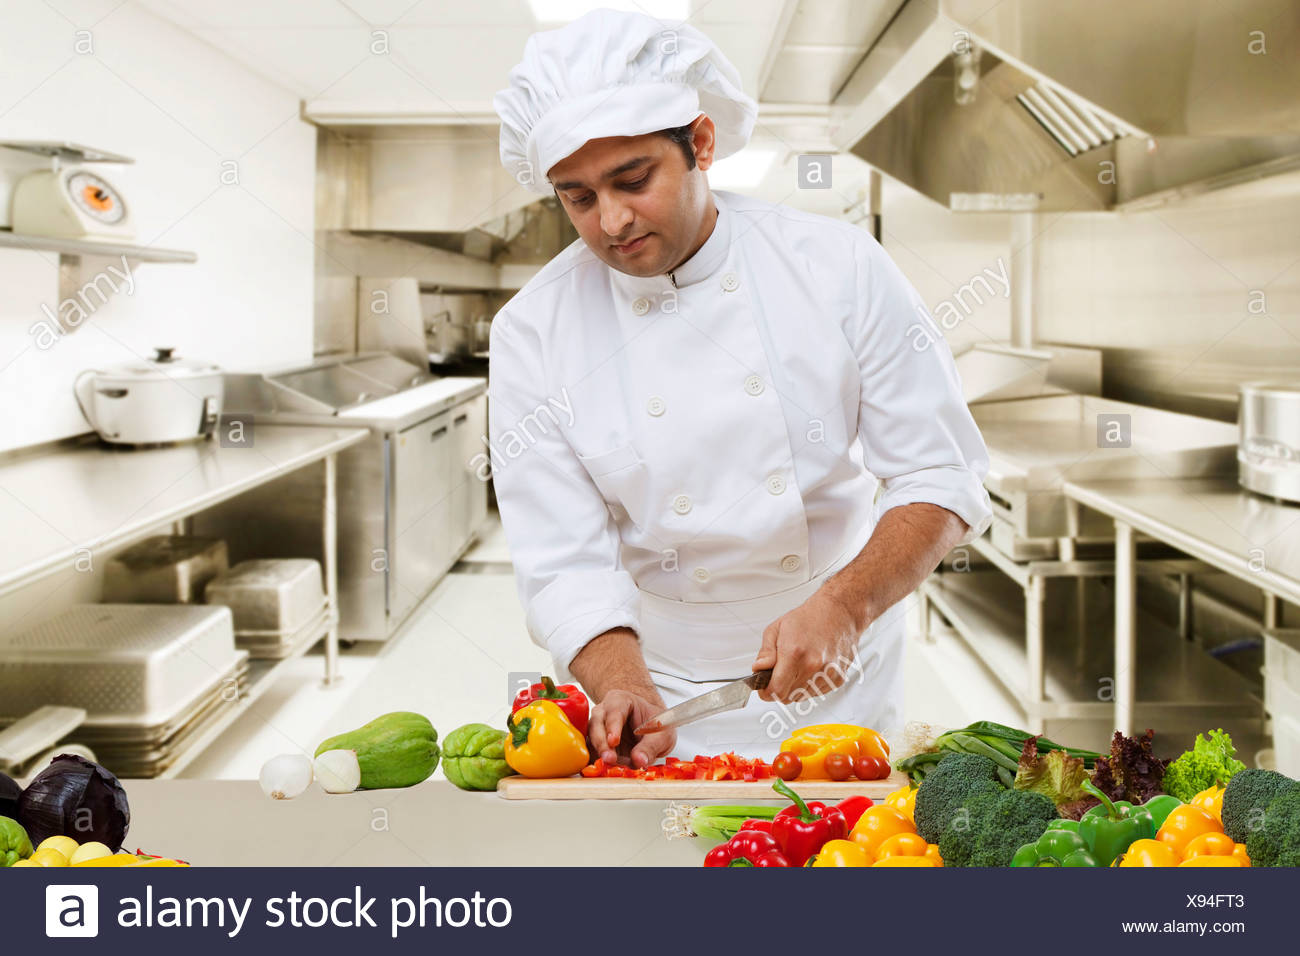 Indian Chef Stock Photos & Indian Chef Stock Images - Alamy